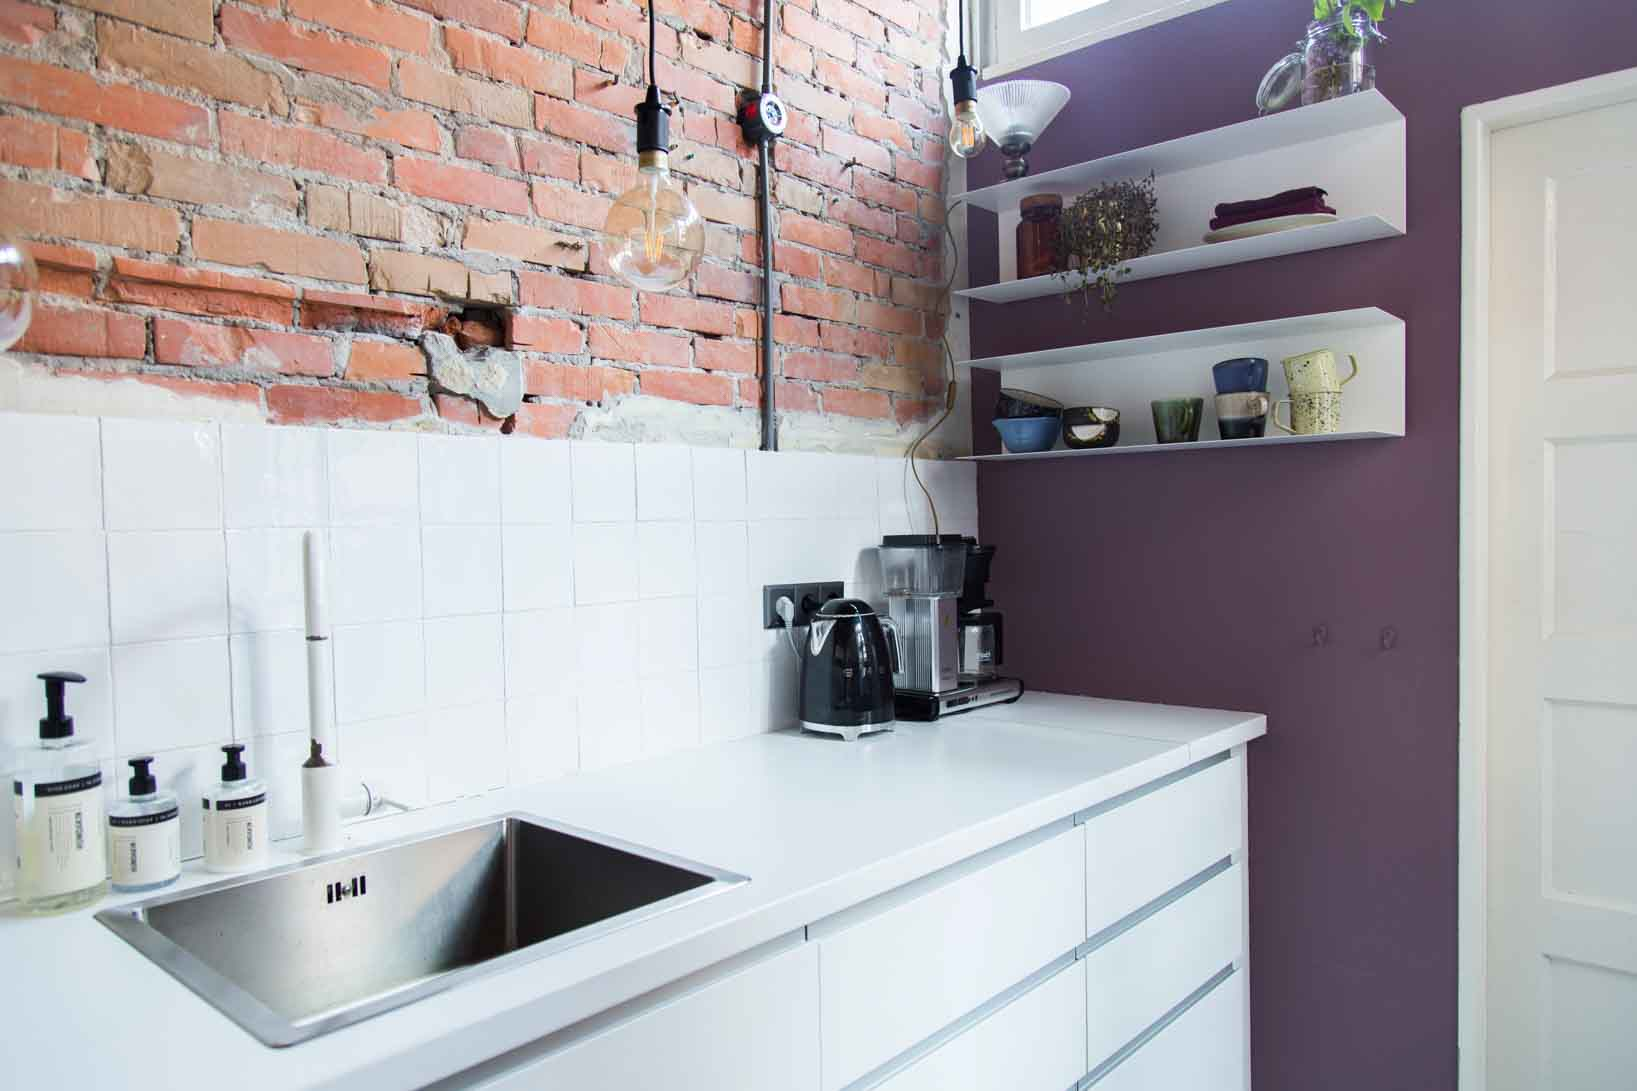 Red bricks, purple kitchen paint walls and a fresh white kitchen with black accents